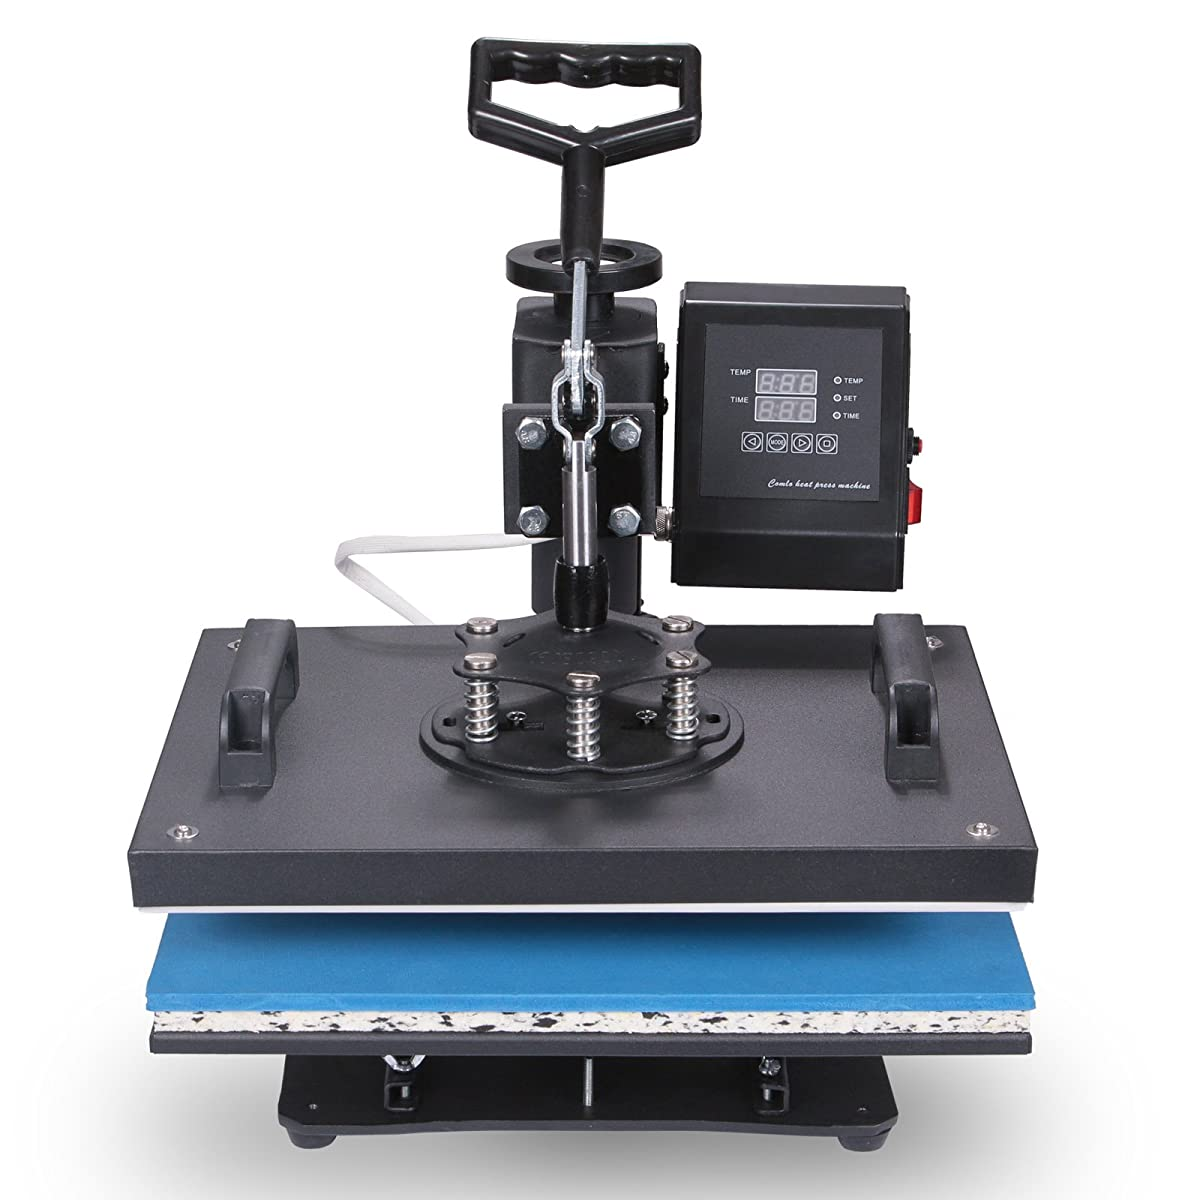 Sublimation Press Mophorn Heat Press 8 In 1 Multifunction Sublimation Heat Press